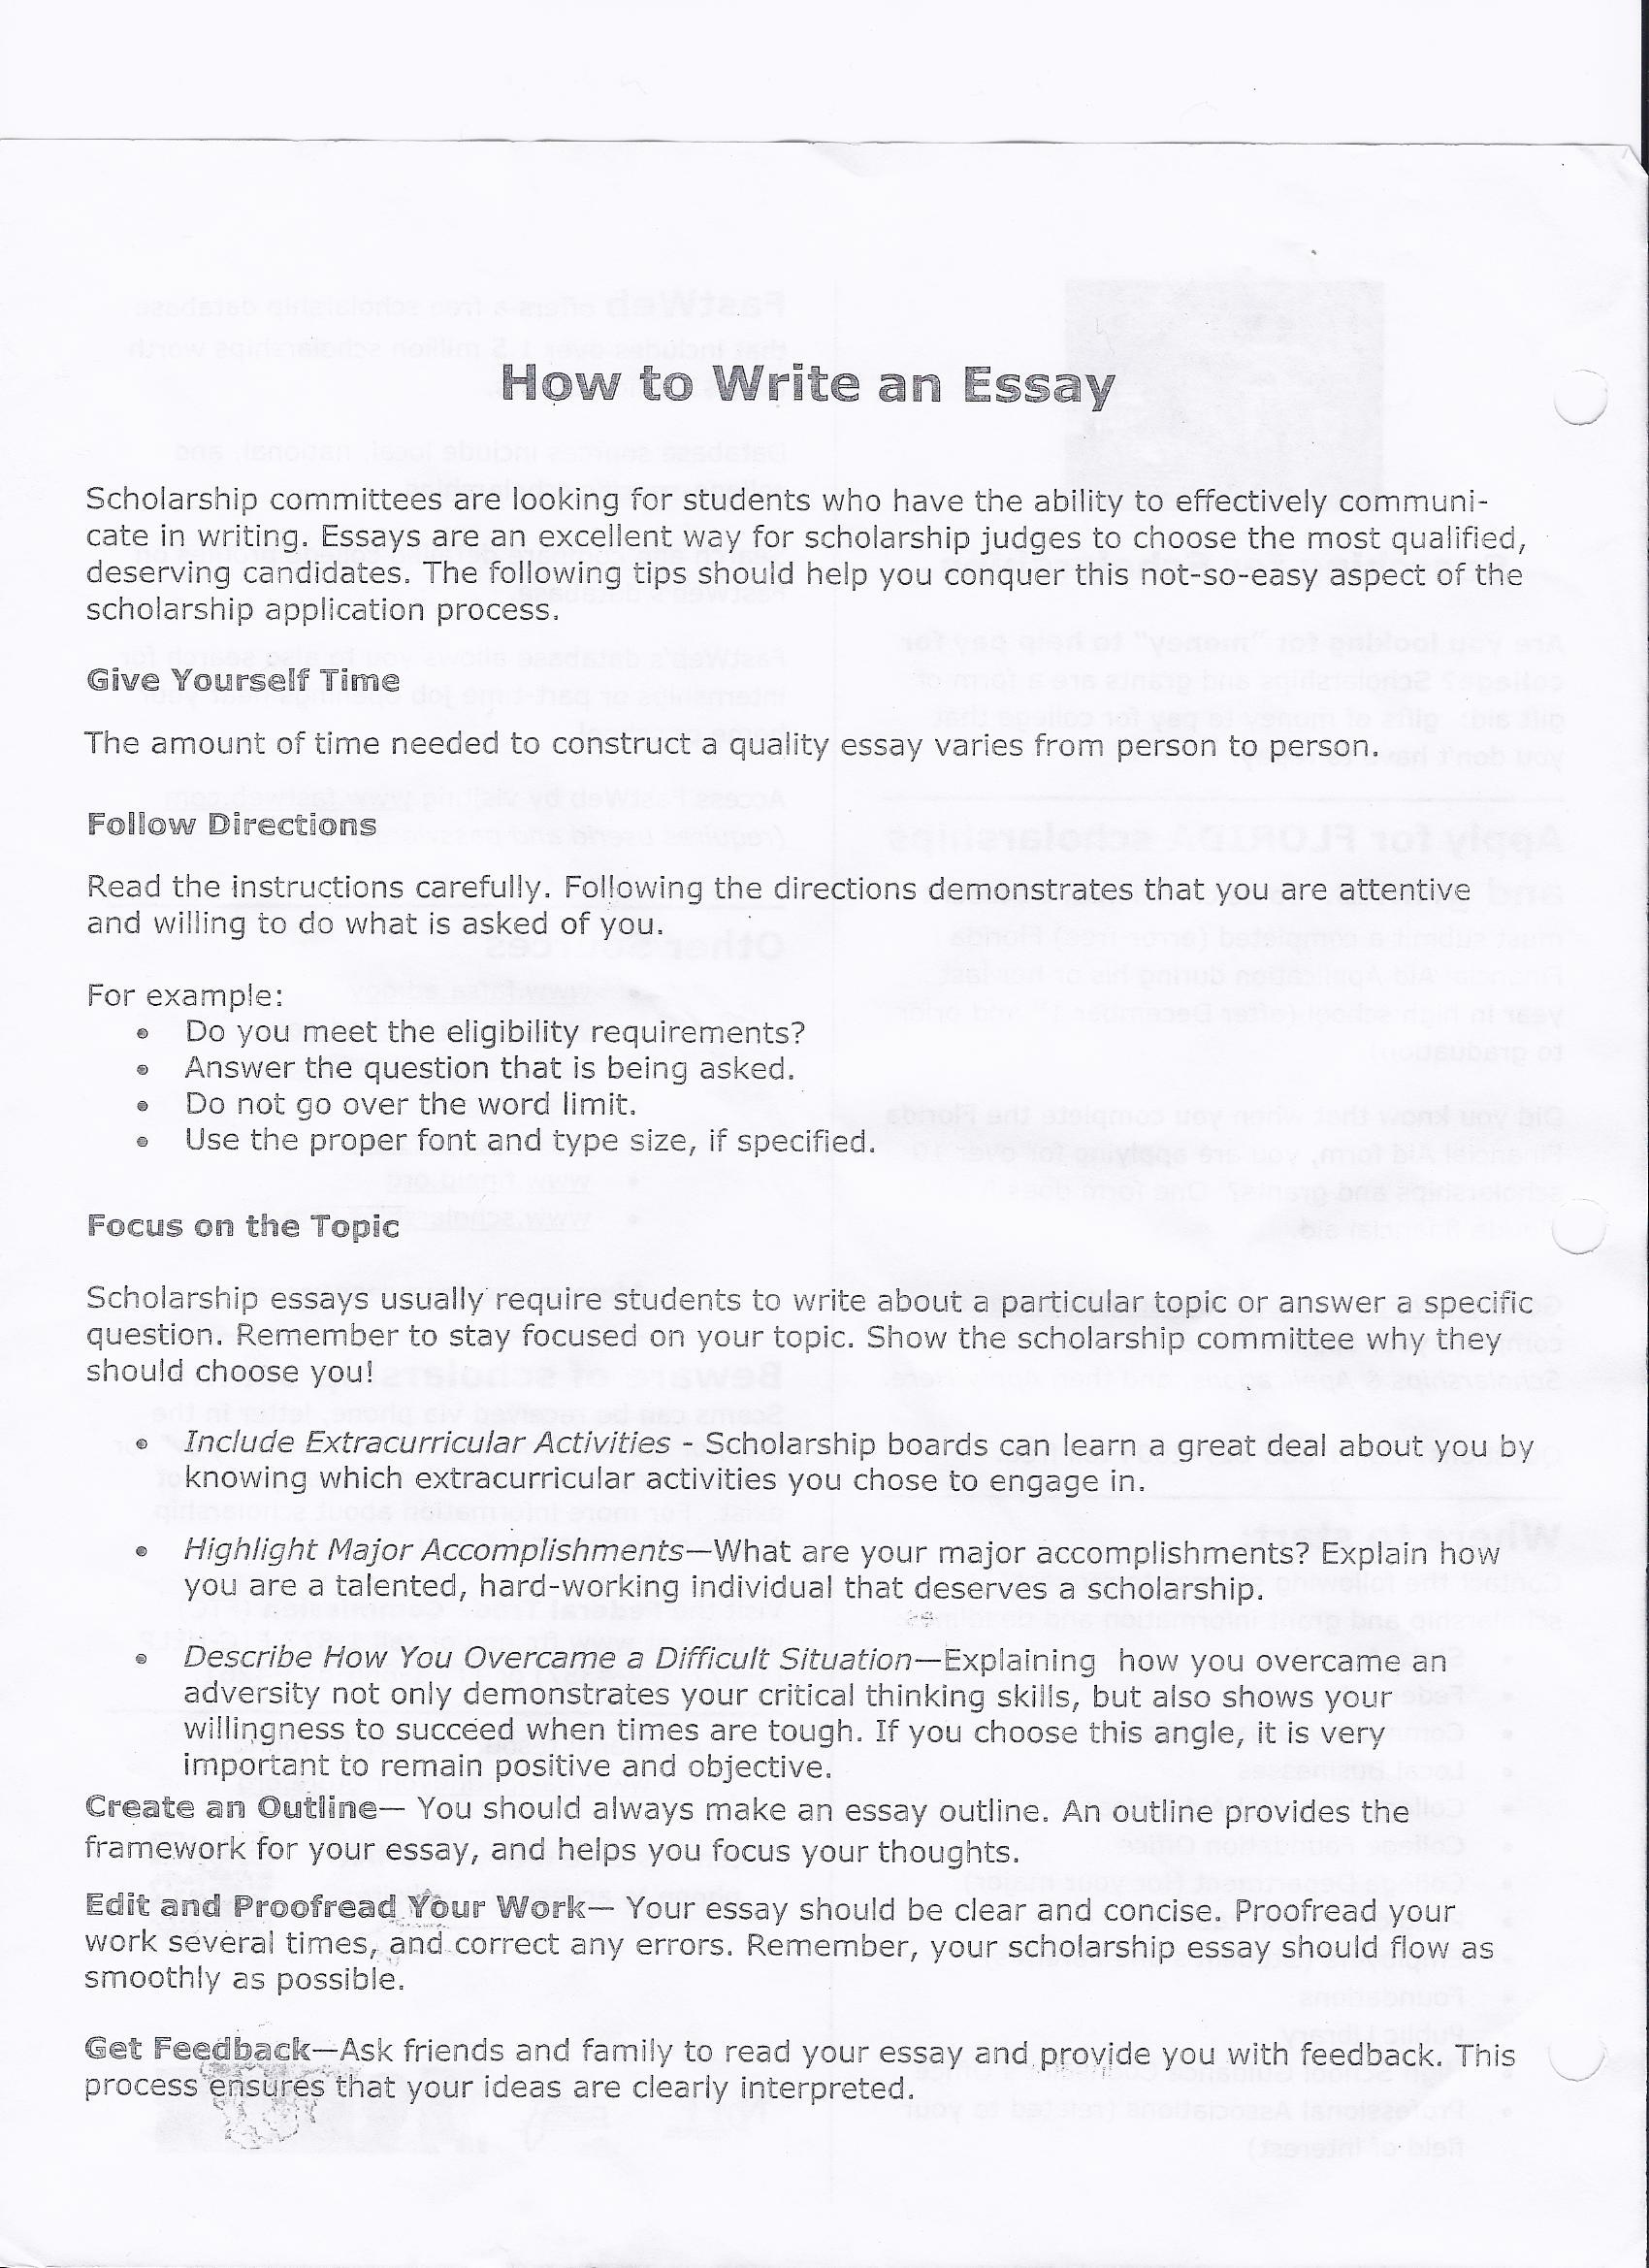 materialistic essay materialism essay honor code essay honor code  collage essay collage essay collage essay jonathon lay personal collage essaycollage essay buy key stage geography